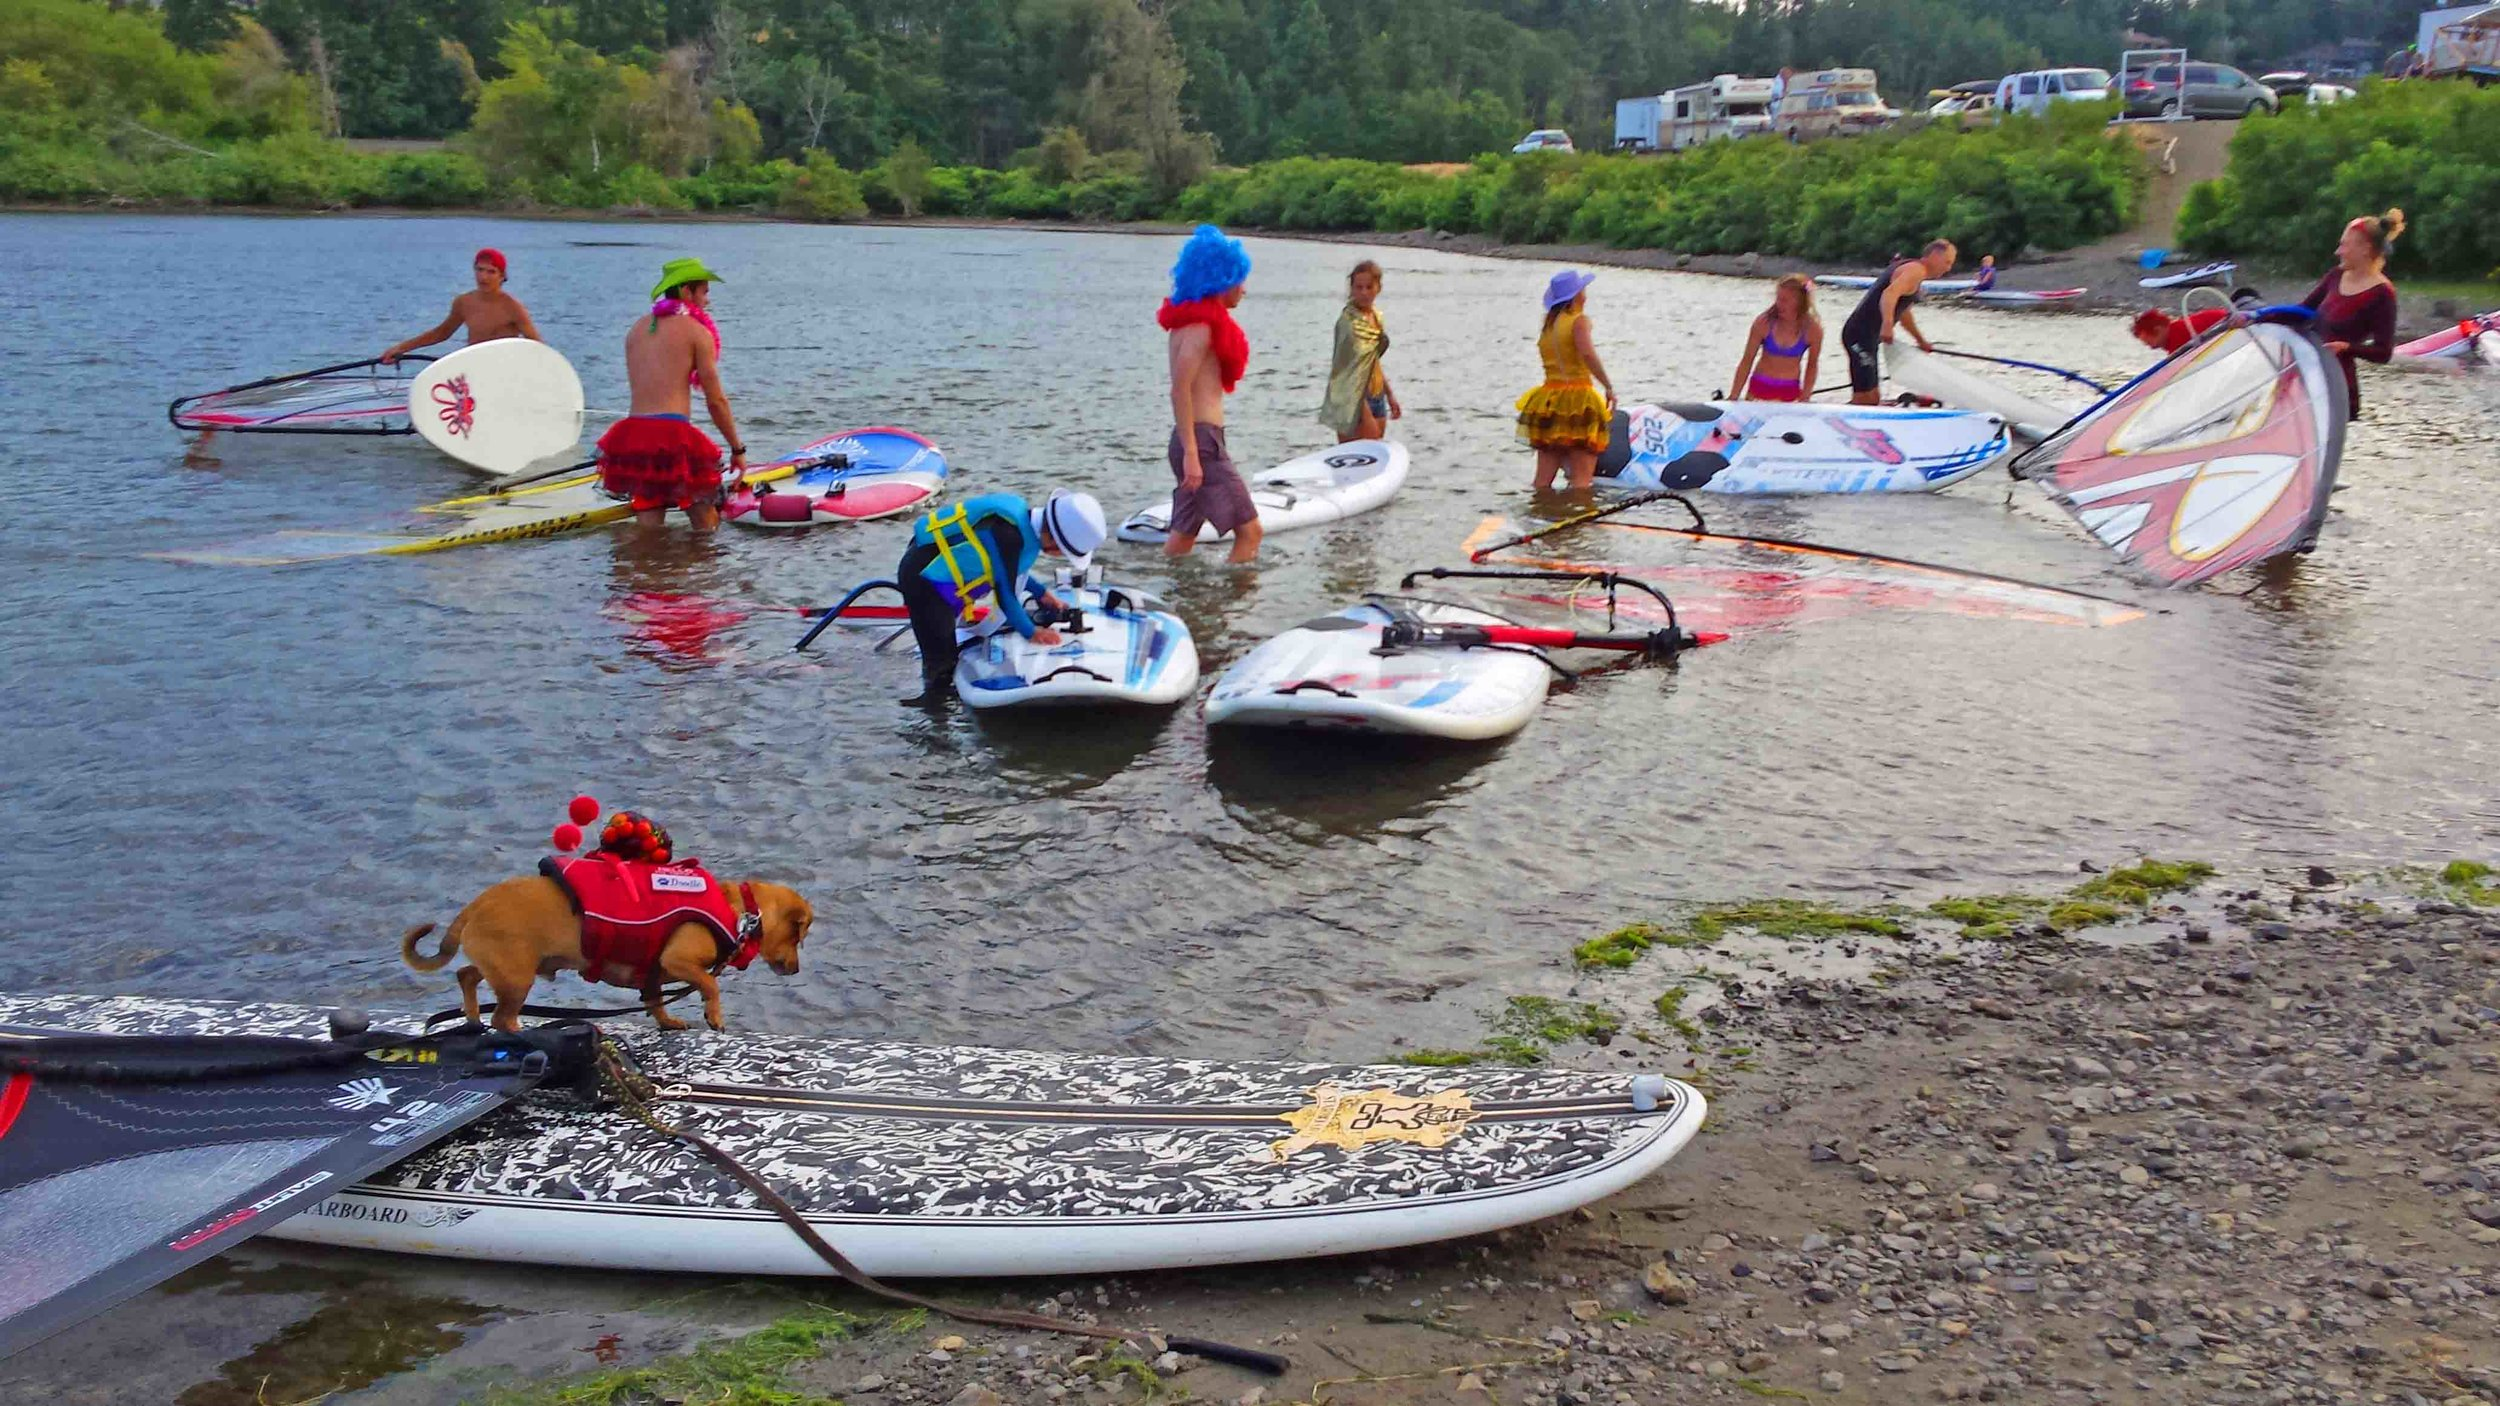 Hood River's windsurfing learning pond - The Hook. Doodle and contestants at King of the Hook, August 12, 2017. This is our favorite low wind board, a Starboard that is a combo SUP/windsurf board.   Photo: (c) Barb Ayers, DogDiary.org